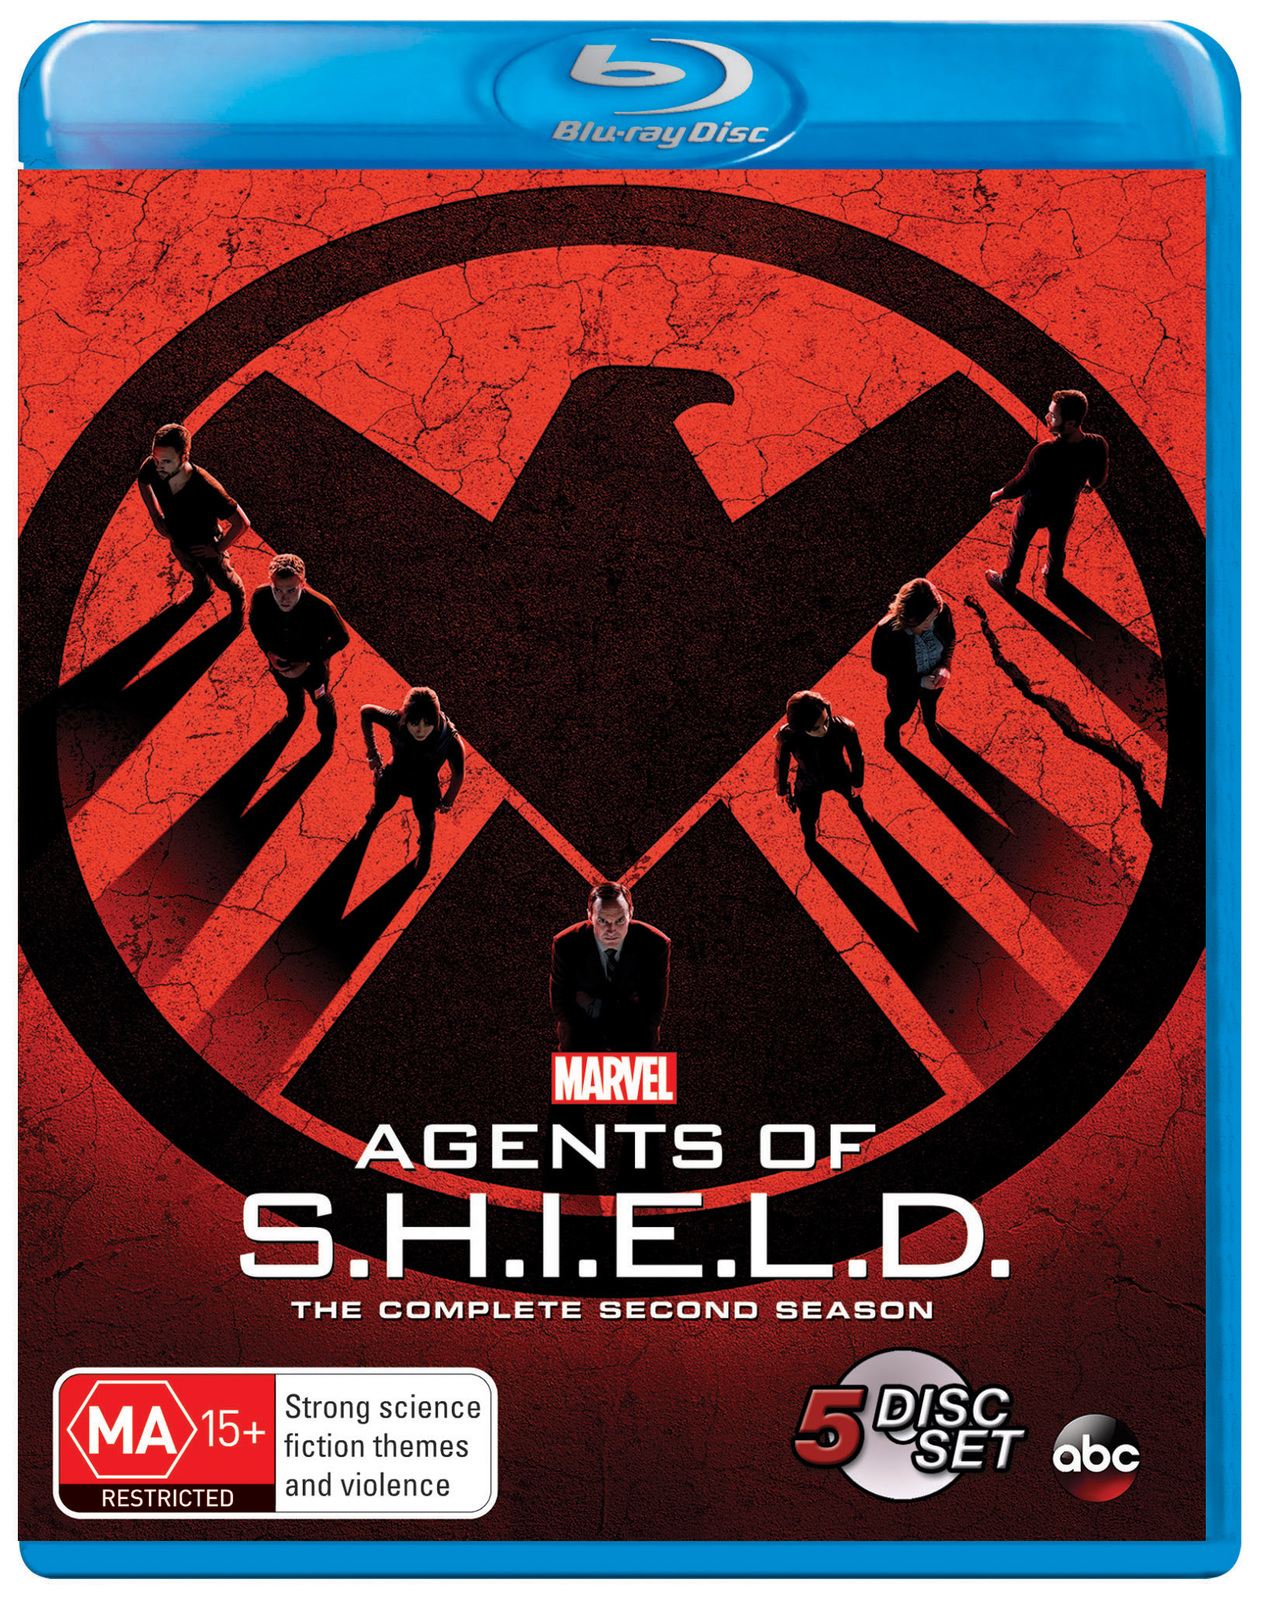 Marvel's Agents of S.H.I.E.L.D - The Complete Second Season on Blu-ray image